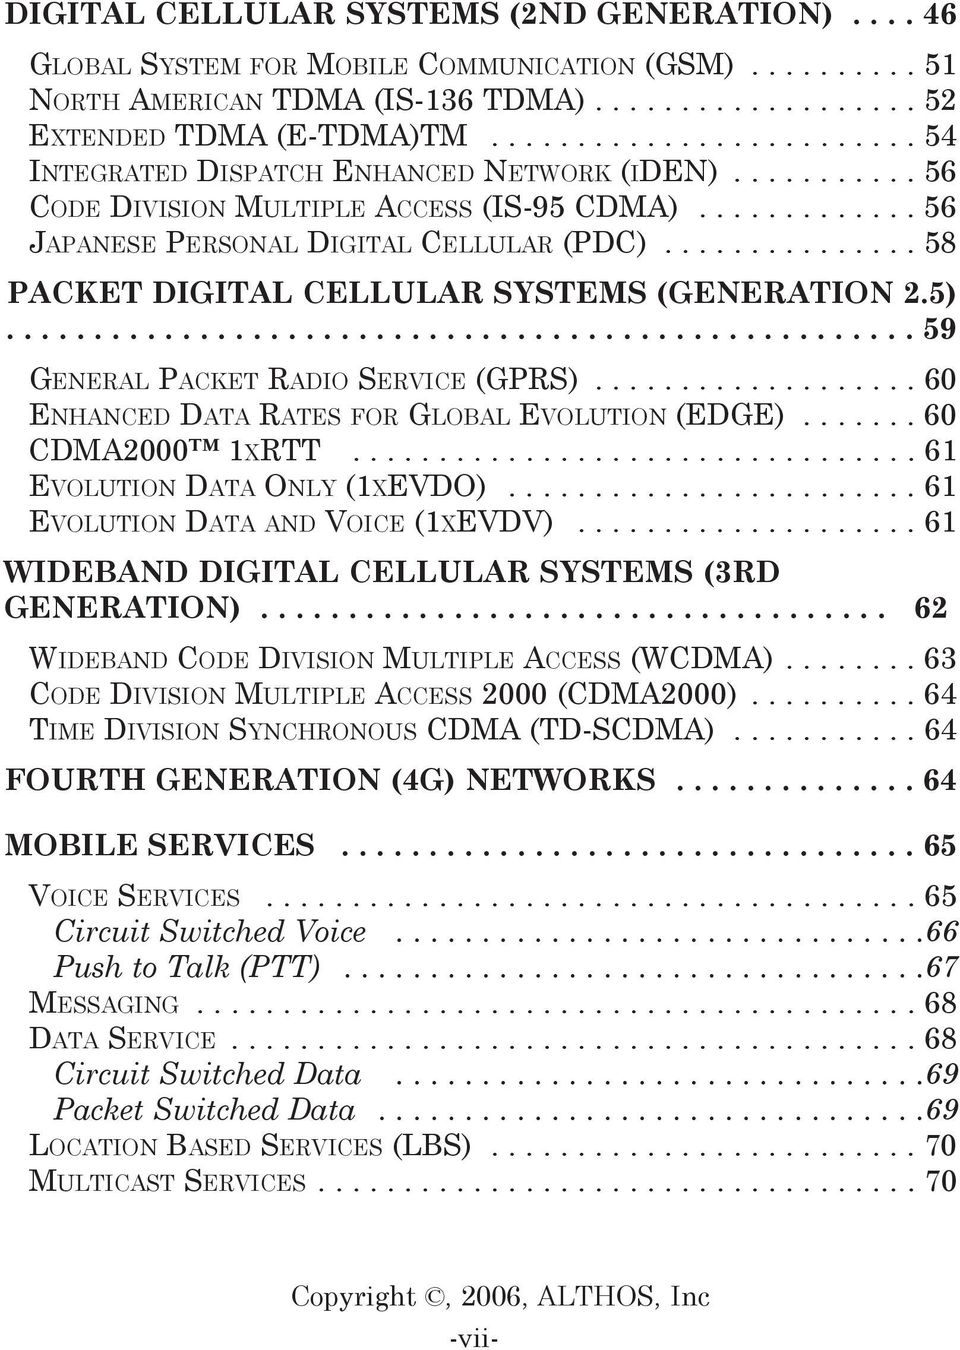 .............. 58 PACKET DIGITAL CELLULAR SYSTEMS (GENERATION 2.5).................................................... 59 GENERAL PACKET RADIO SERVICE (GPRS).